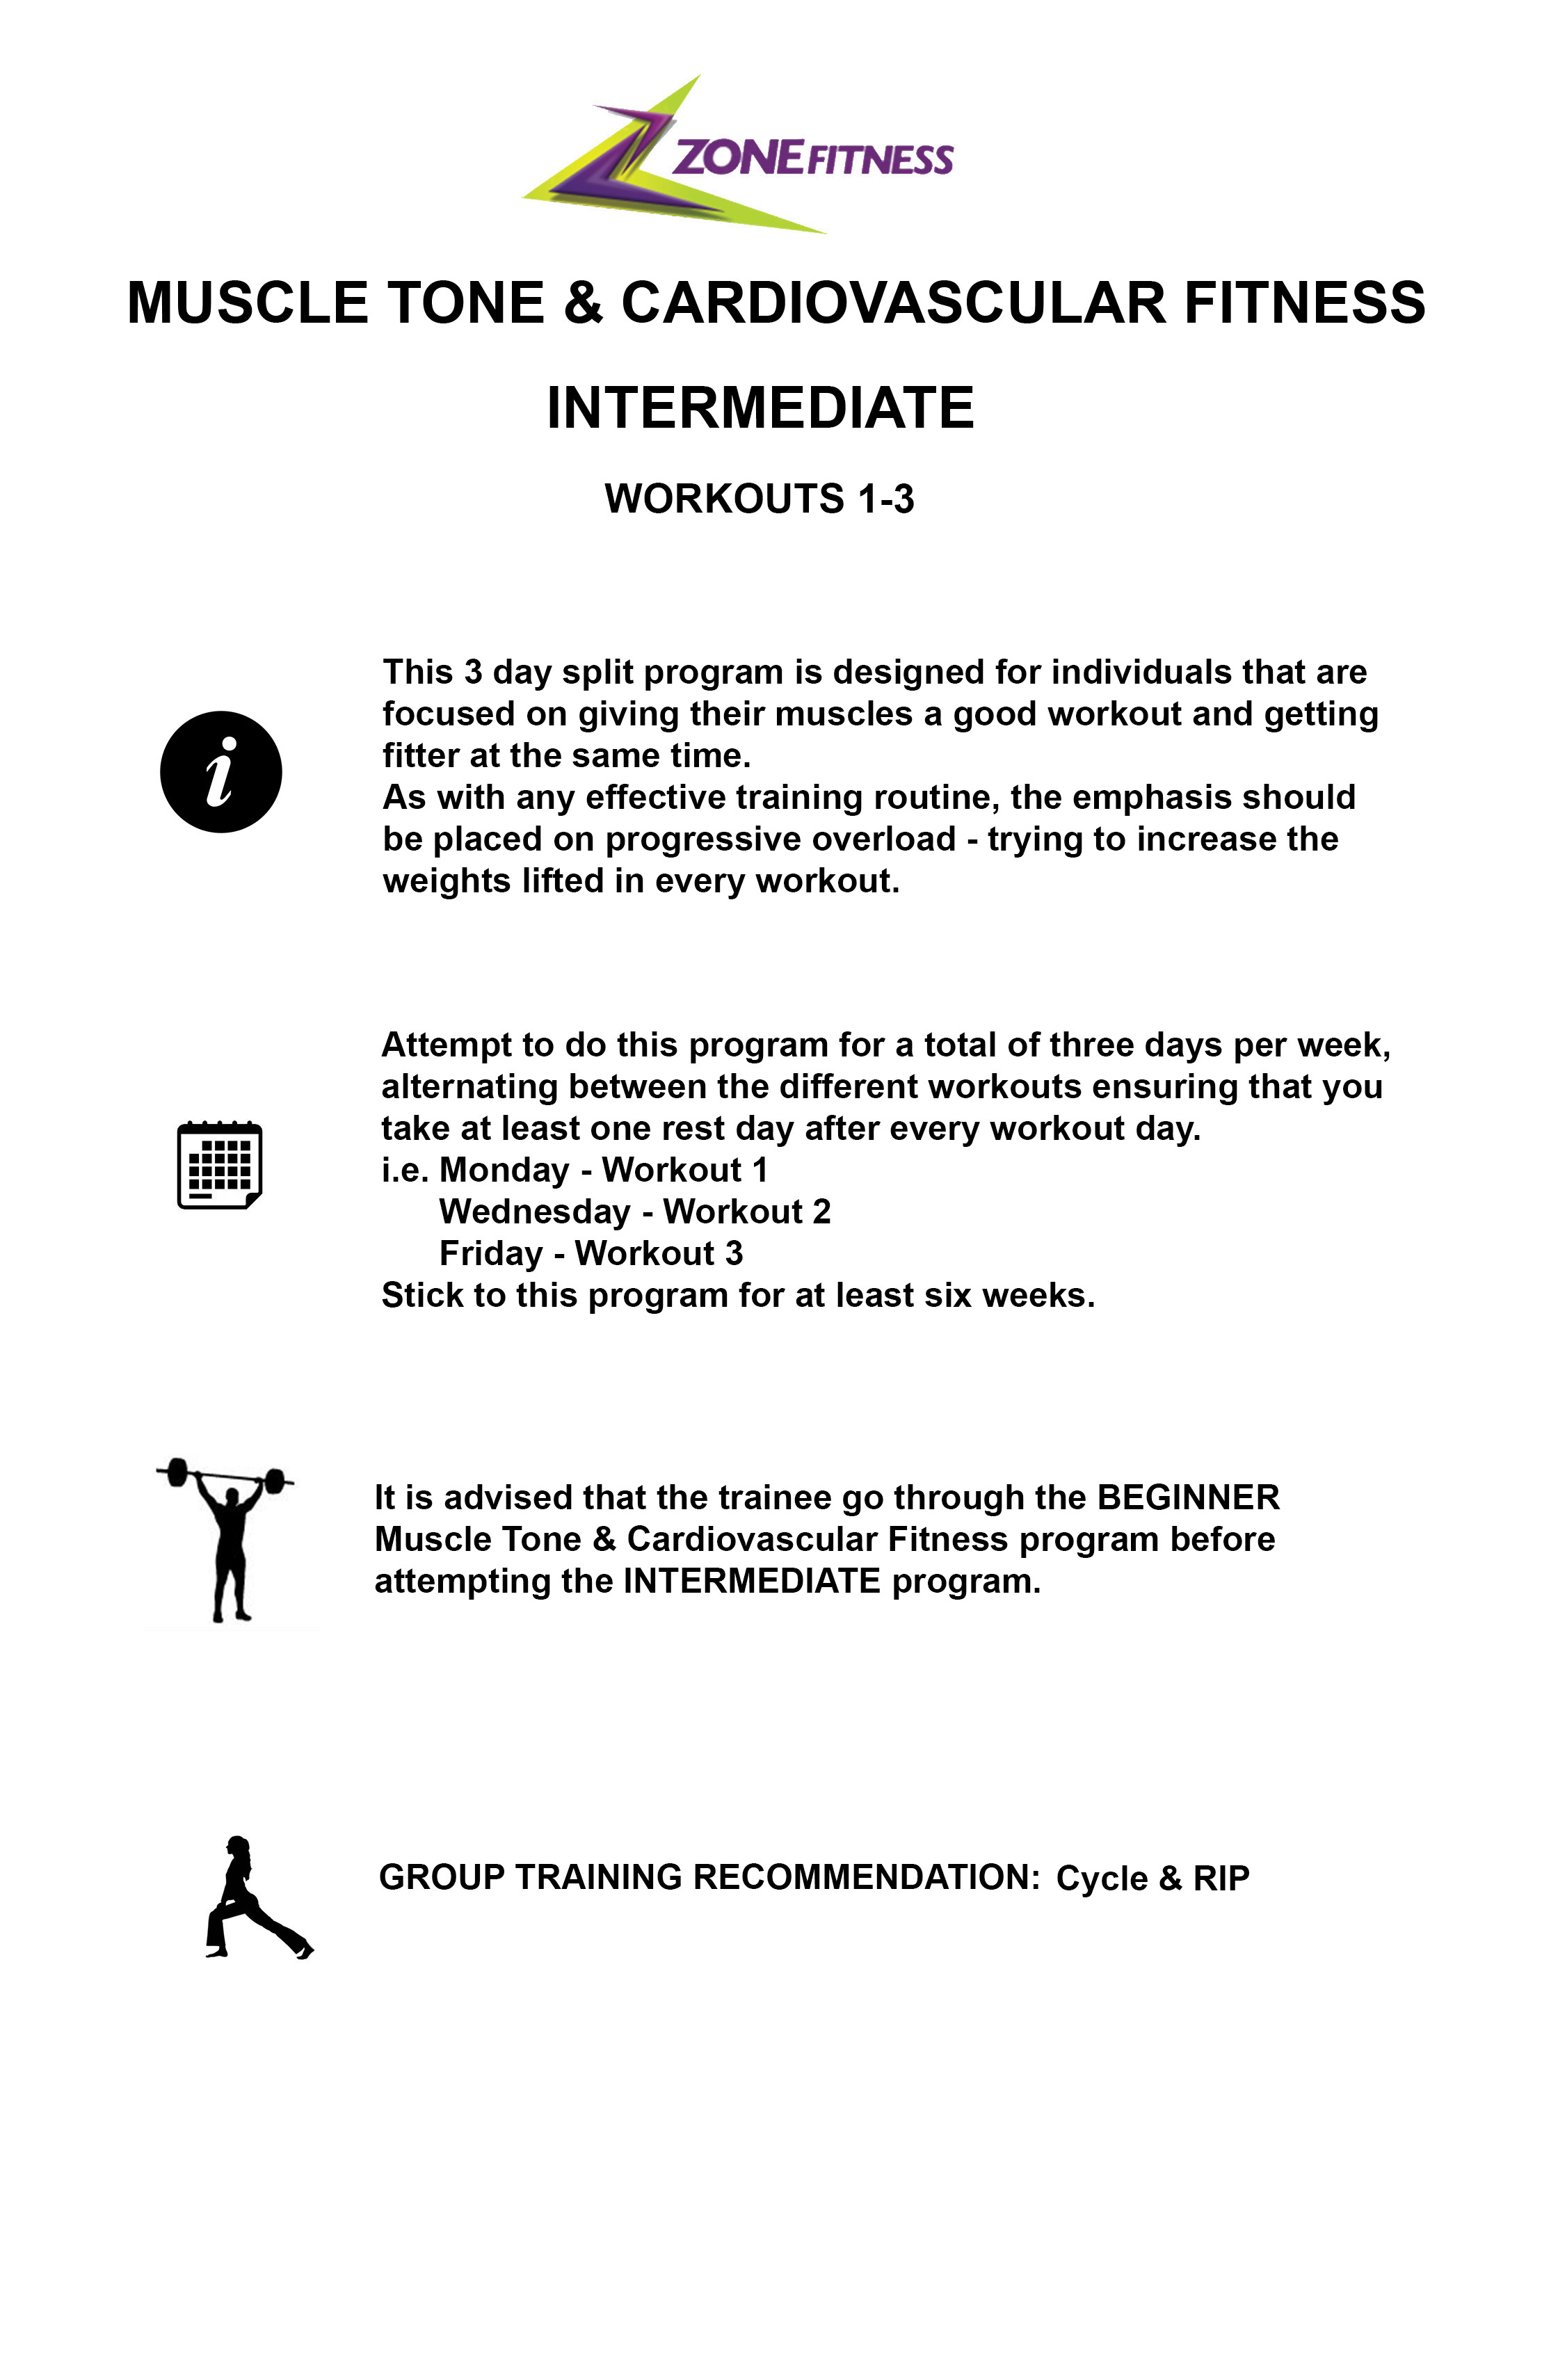 MUSCLE TONE AND CARDIO FITNESS INTERMEDIATE INFORMATION